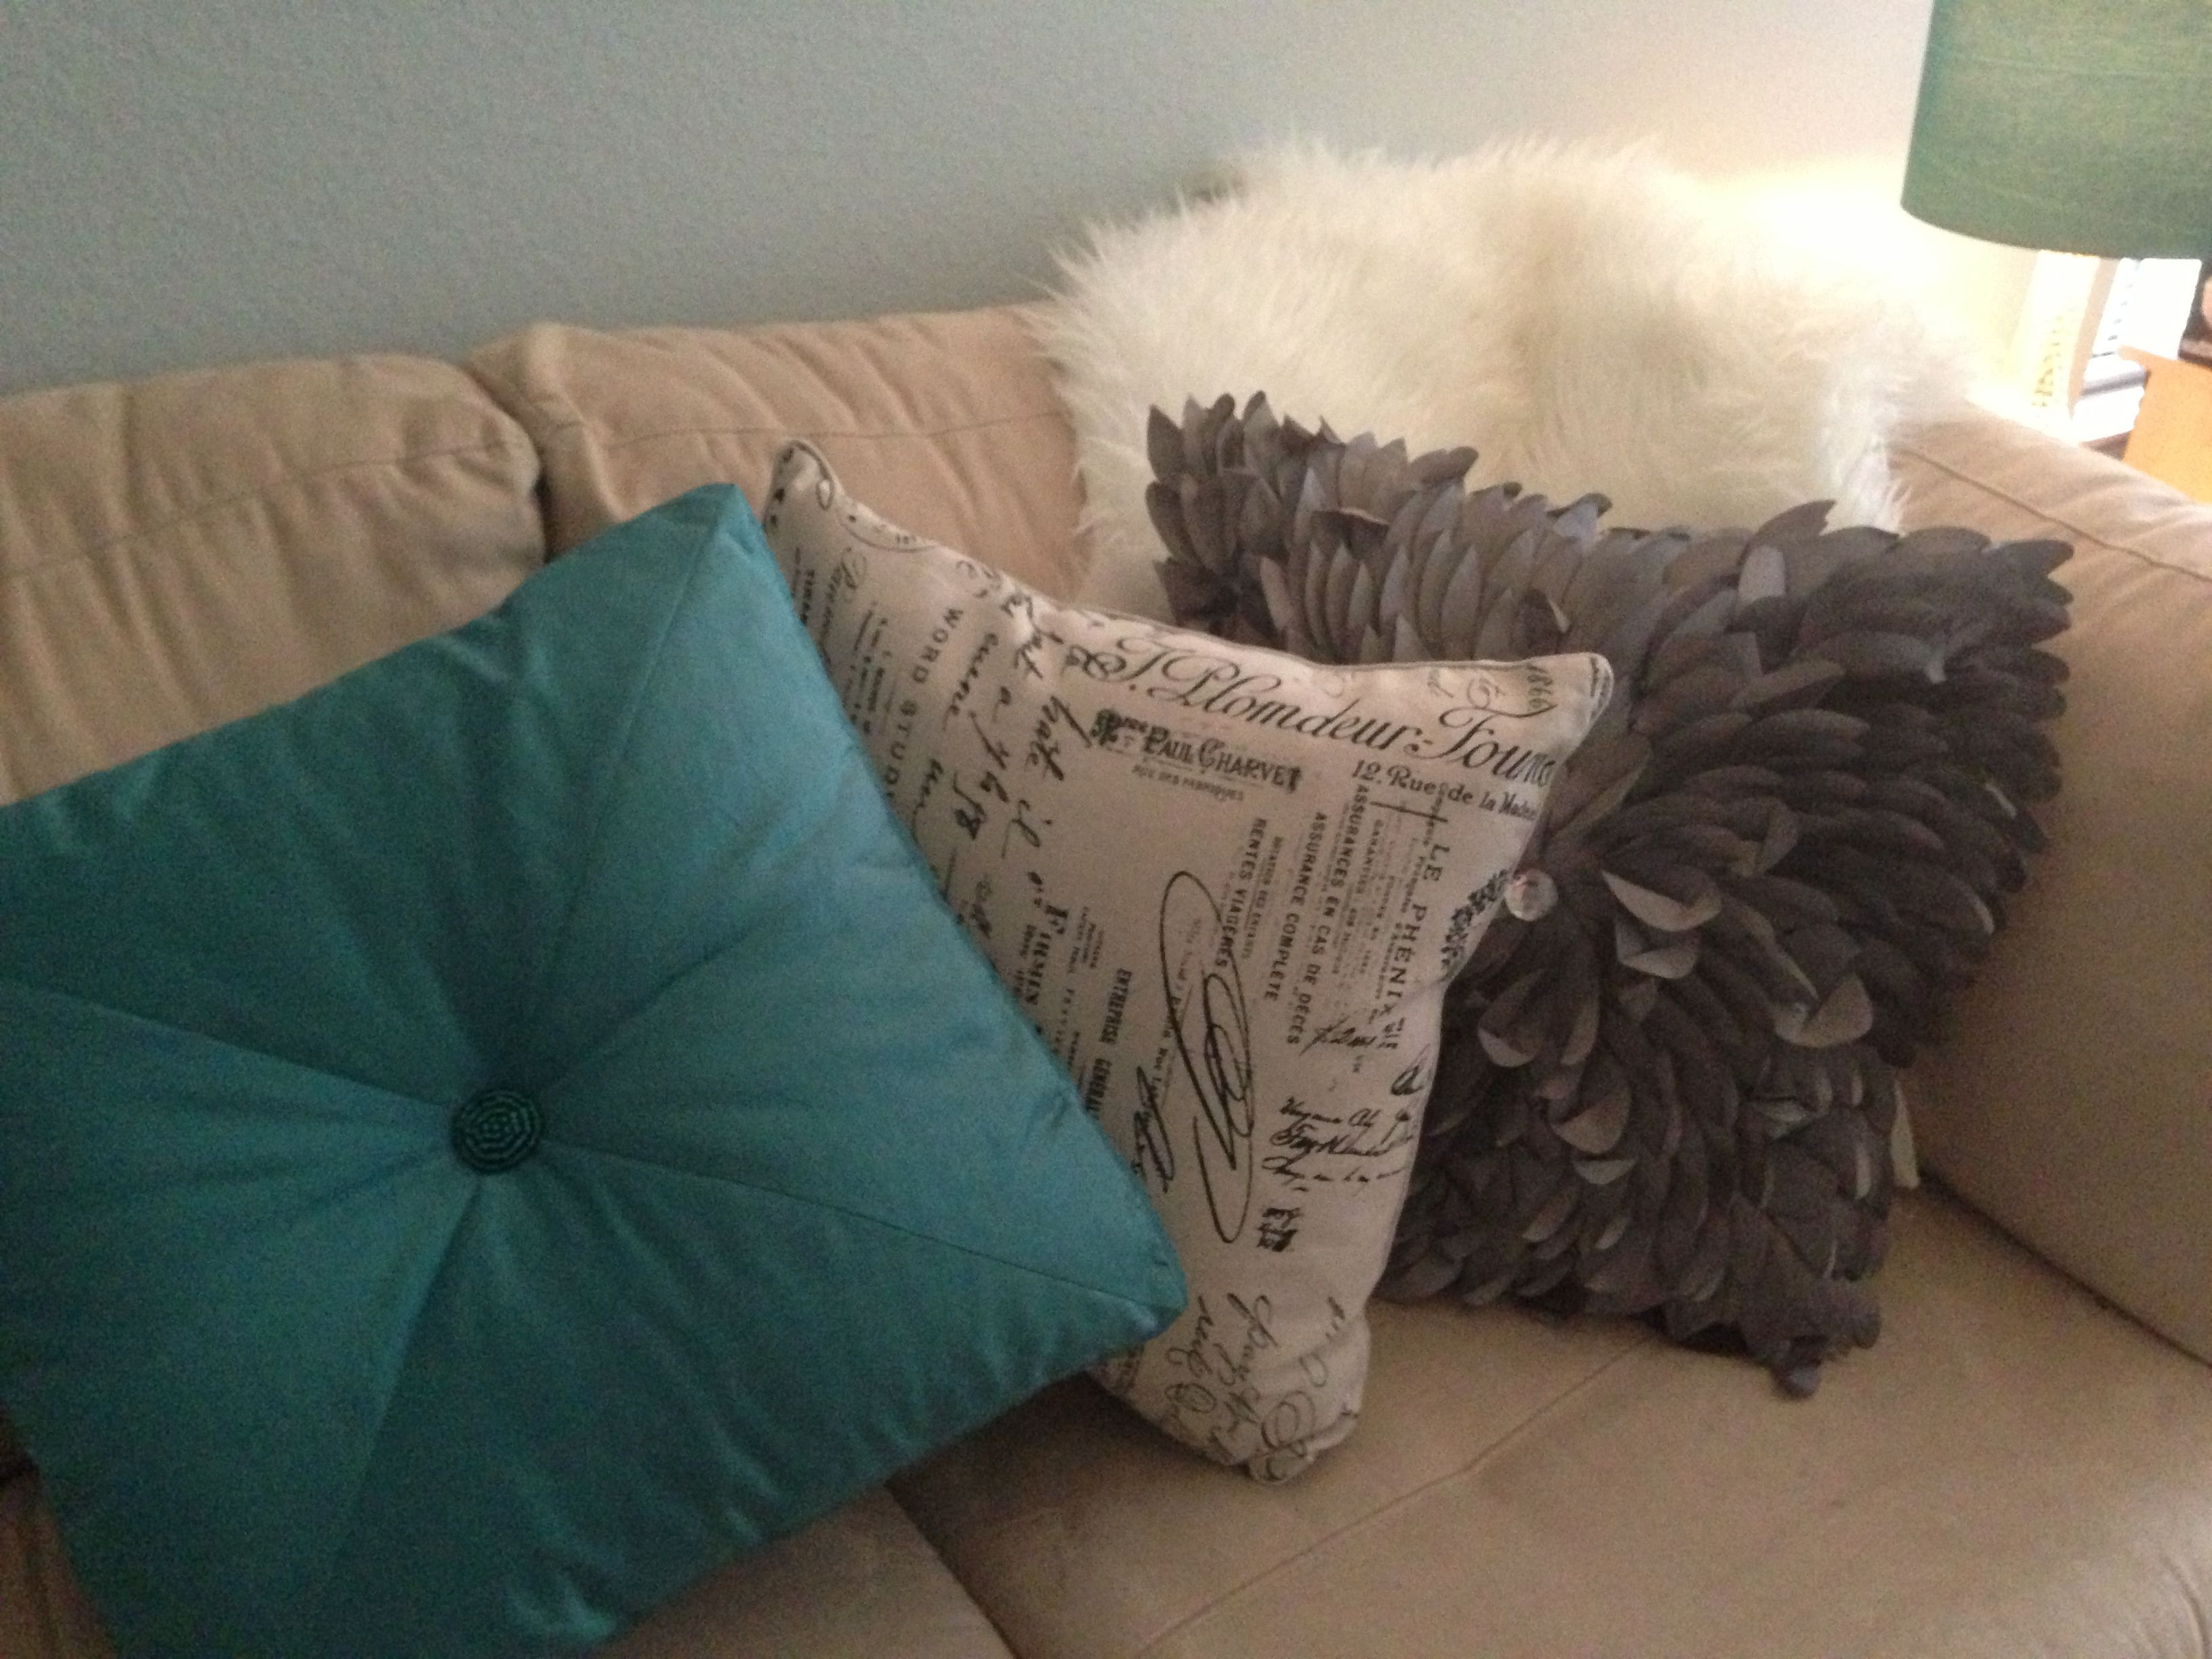 Teal And Cream Decorative Pillows : Throw pillows on cream couch - teal pillow, cream with writing, and shaggy grey pillow with ...